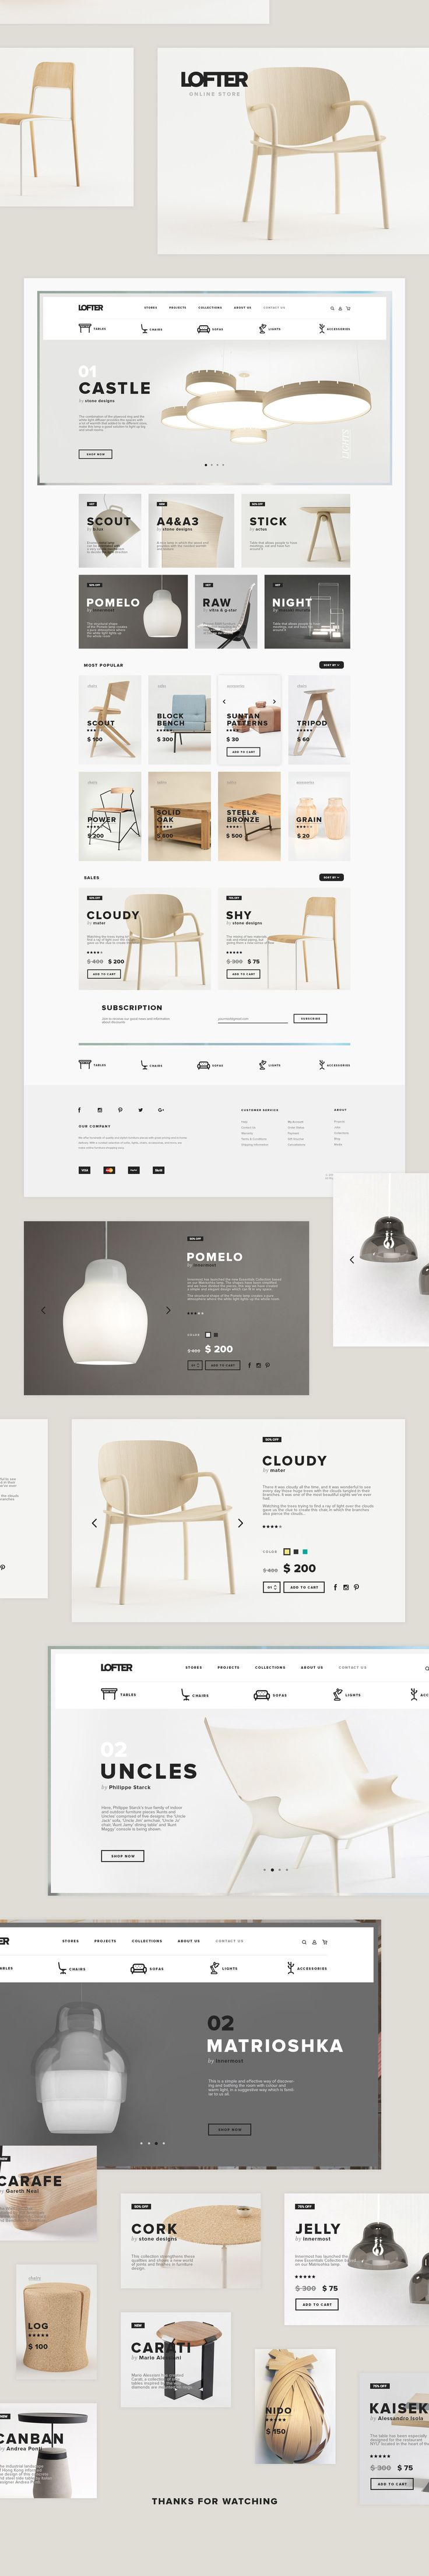 Lofter on Behance